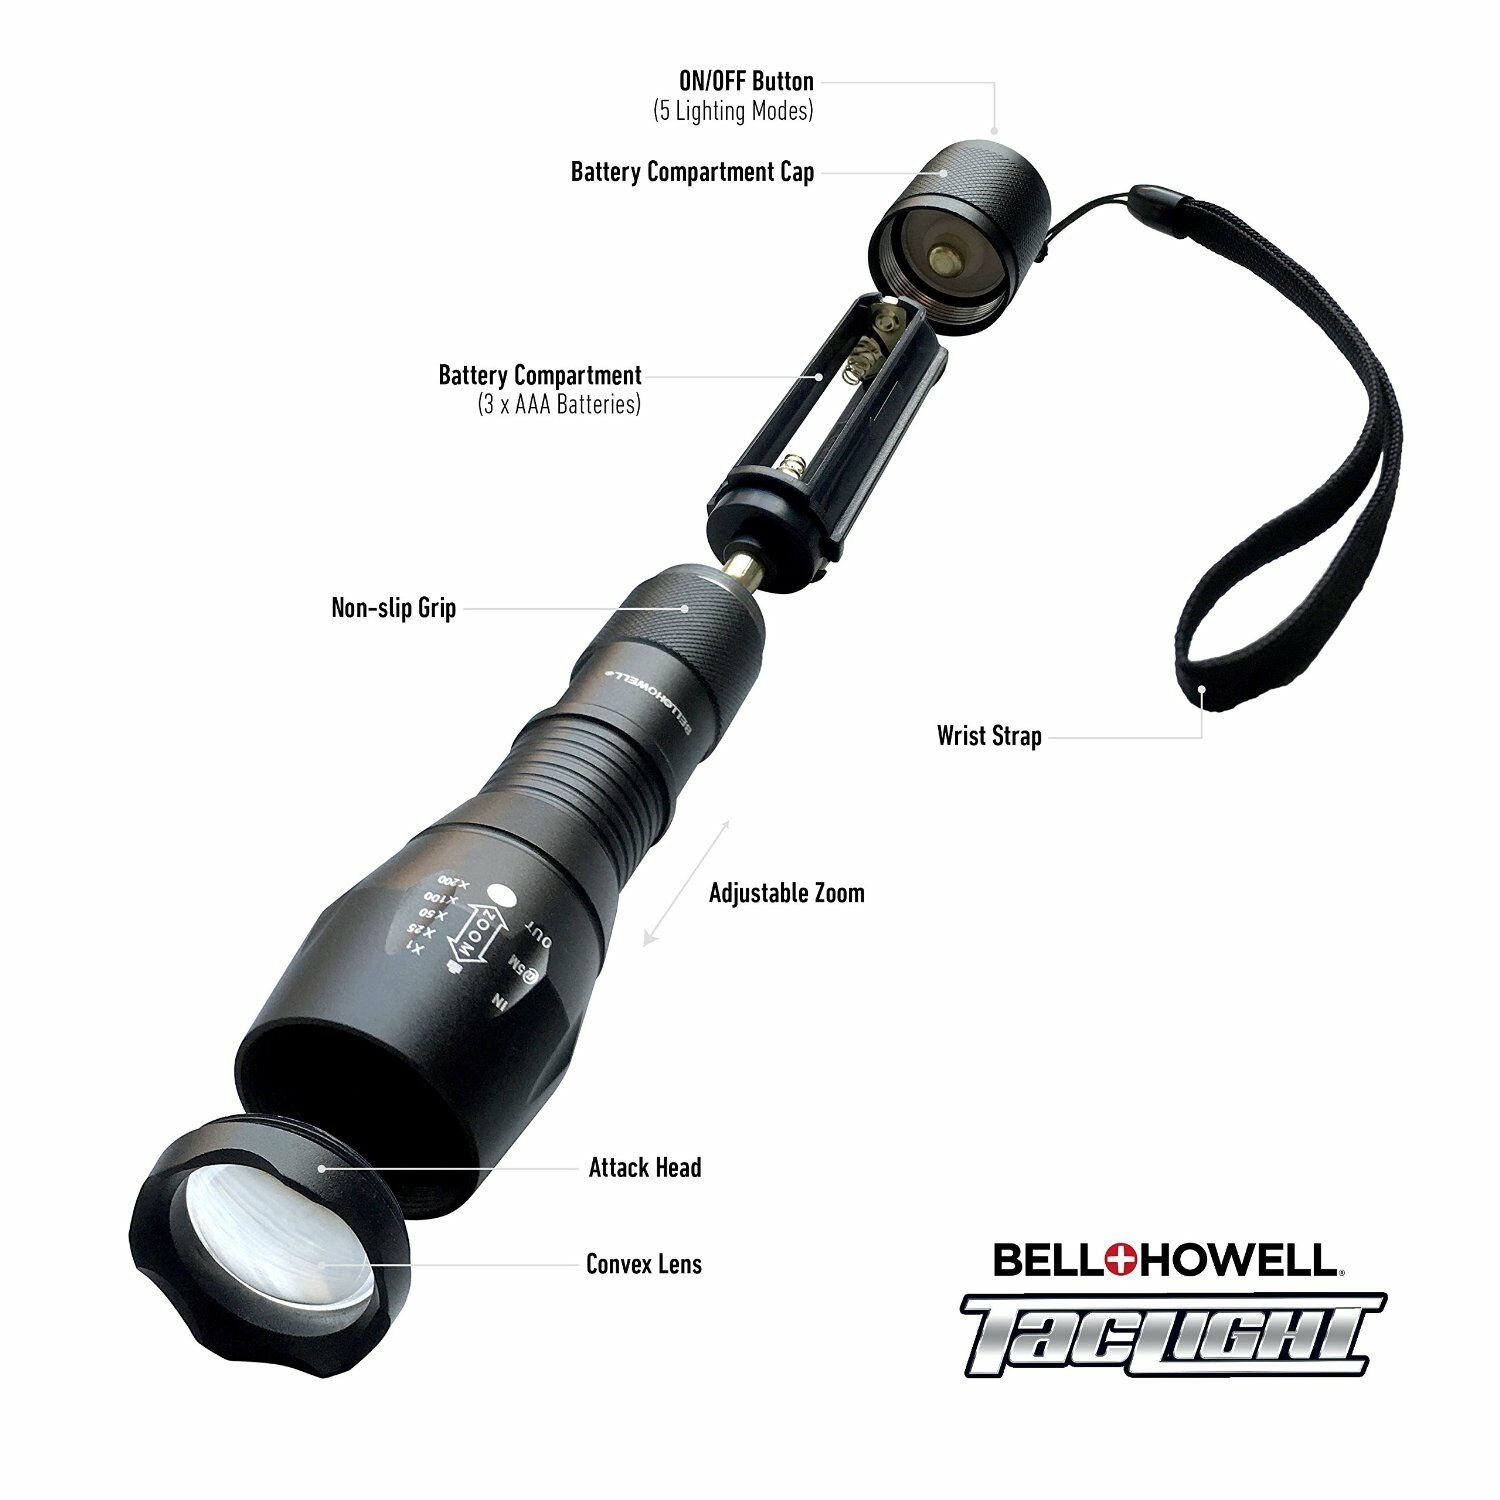 bell howell taclight high powered tactical flashlight as seen on tv new. Black Bedroom Furniture Sets. Home Design Ideas